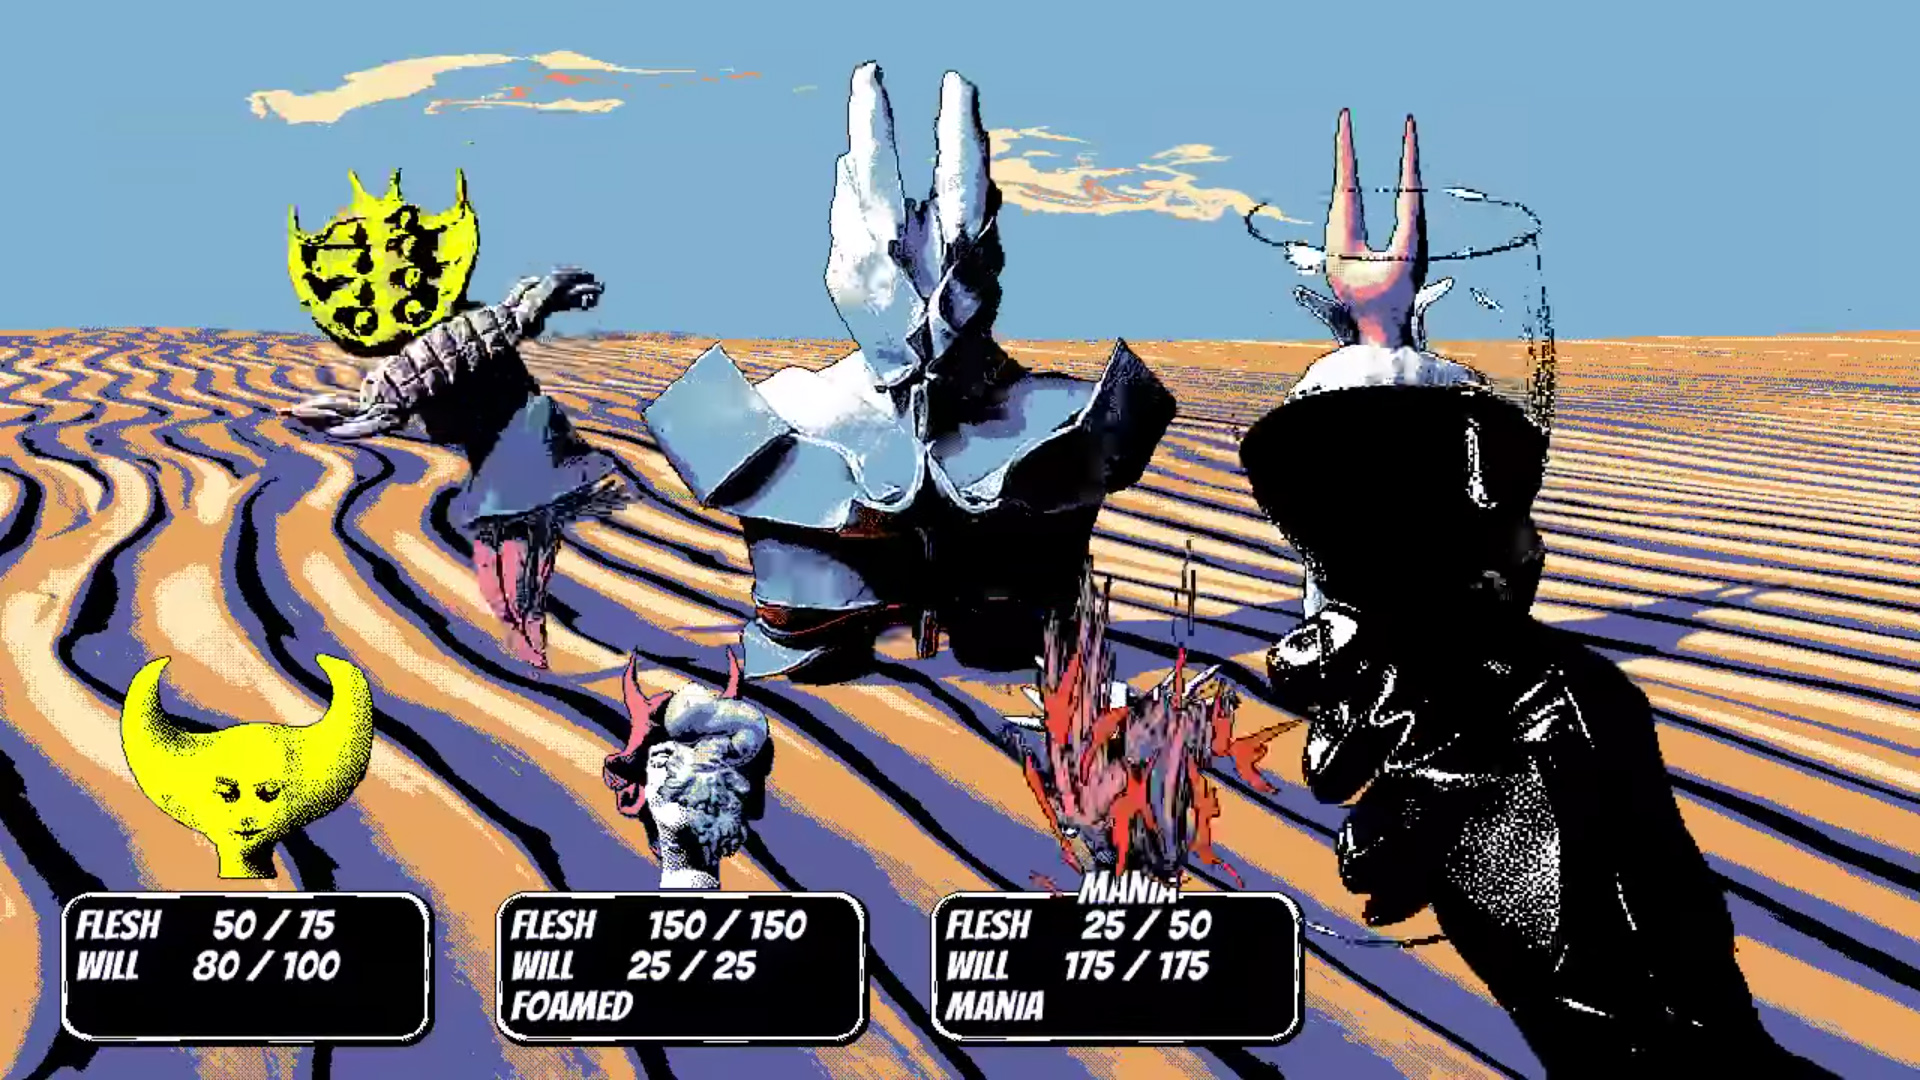 Hylics 2 is a total fever dream and I love it screenshot